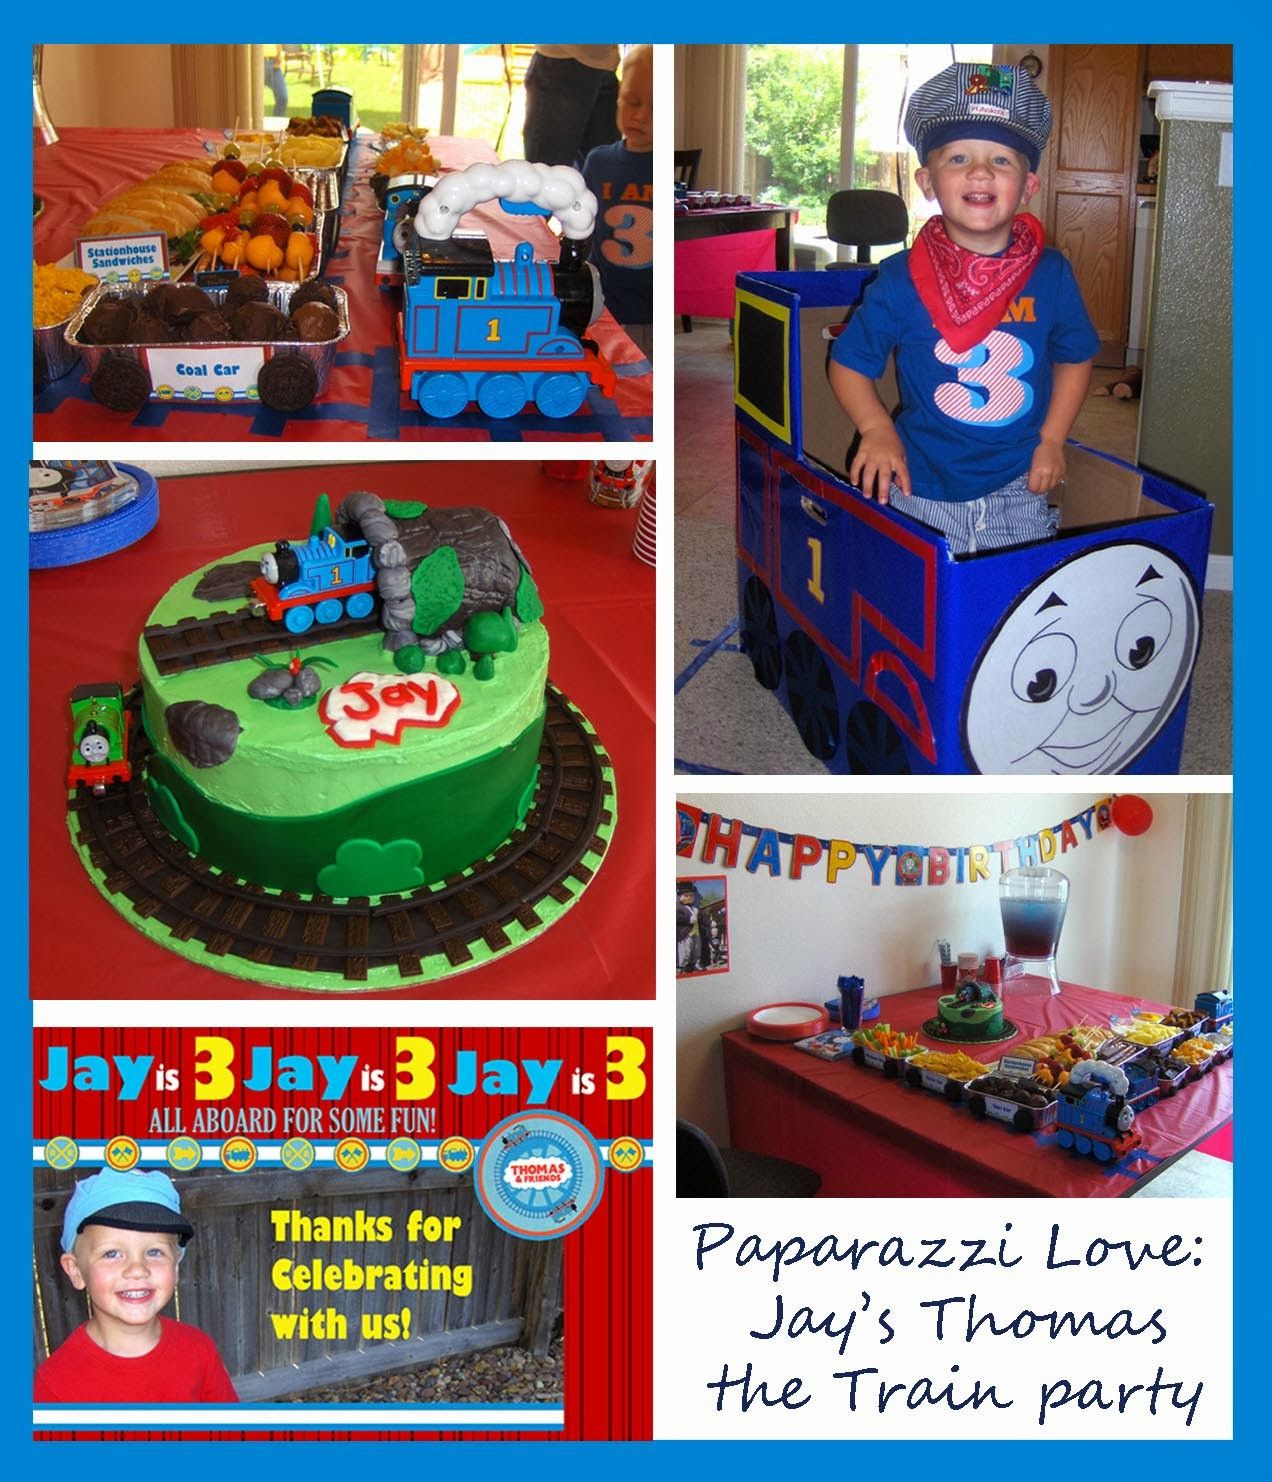 Best ideas about Thomas The Train Birthday Decorations . Save or Pin Paparazzi Love Jay s Thomas the Train Birthday Party Now.